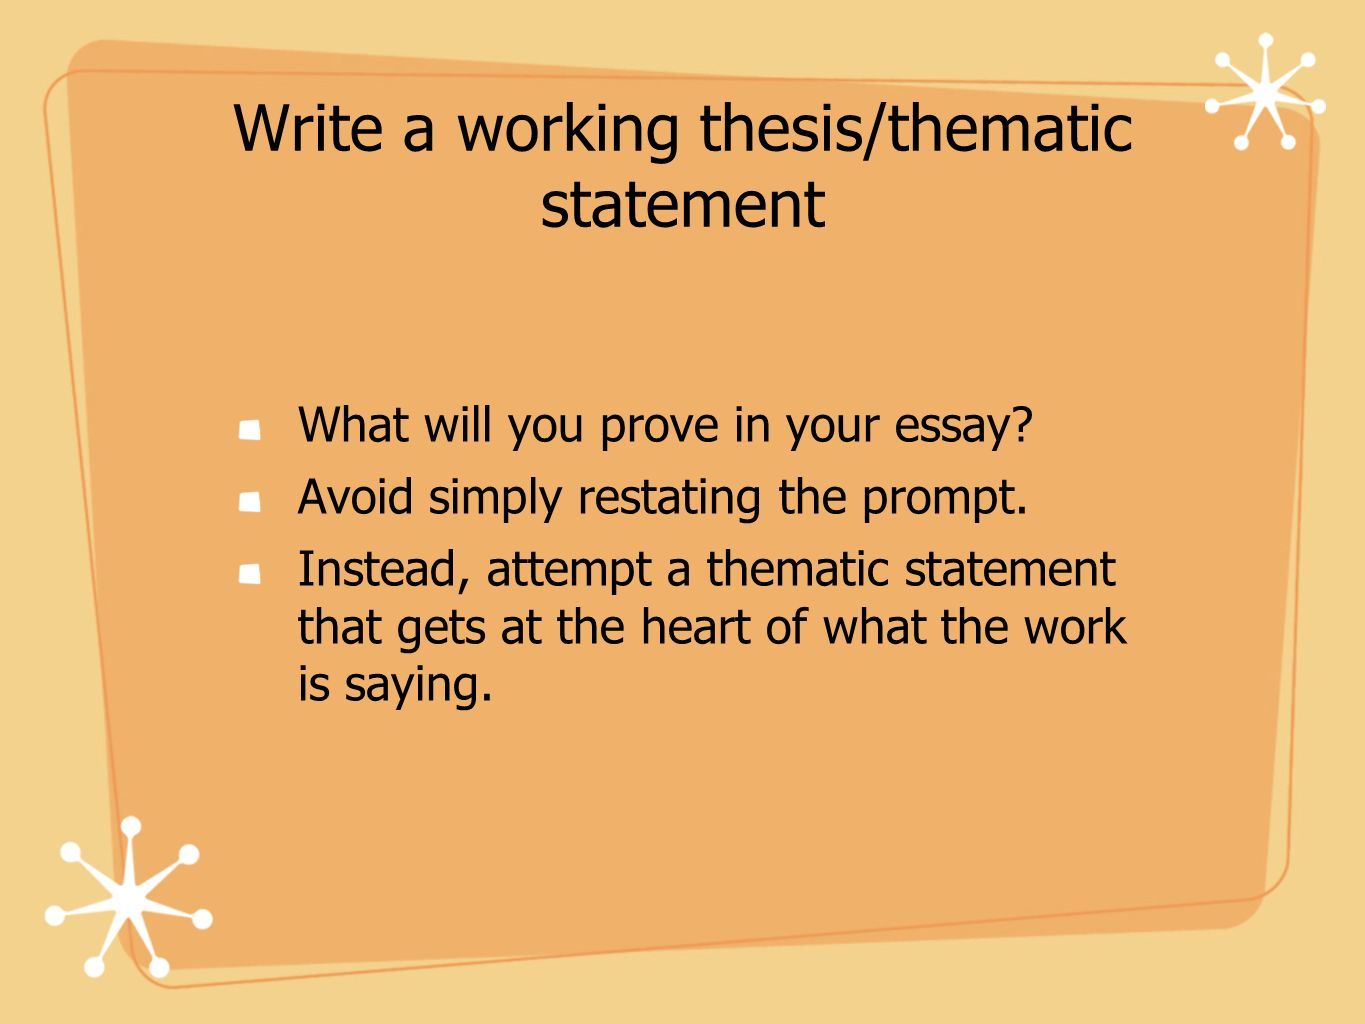 Write a working thesis/thematic statement